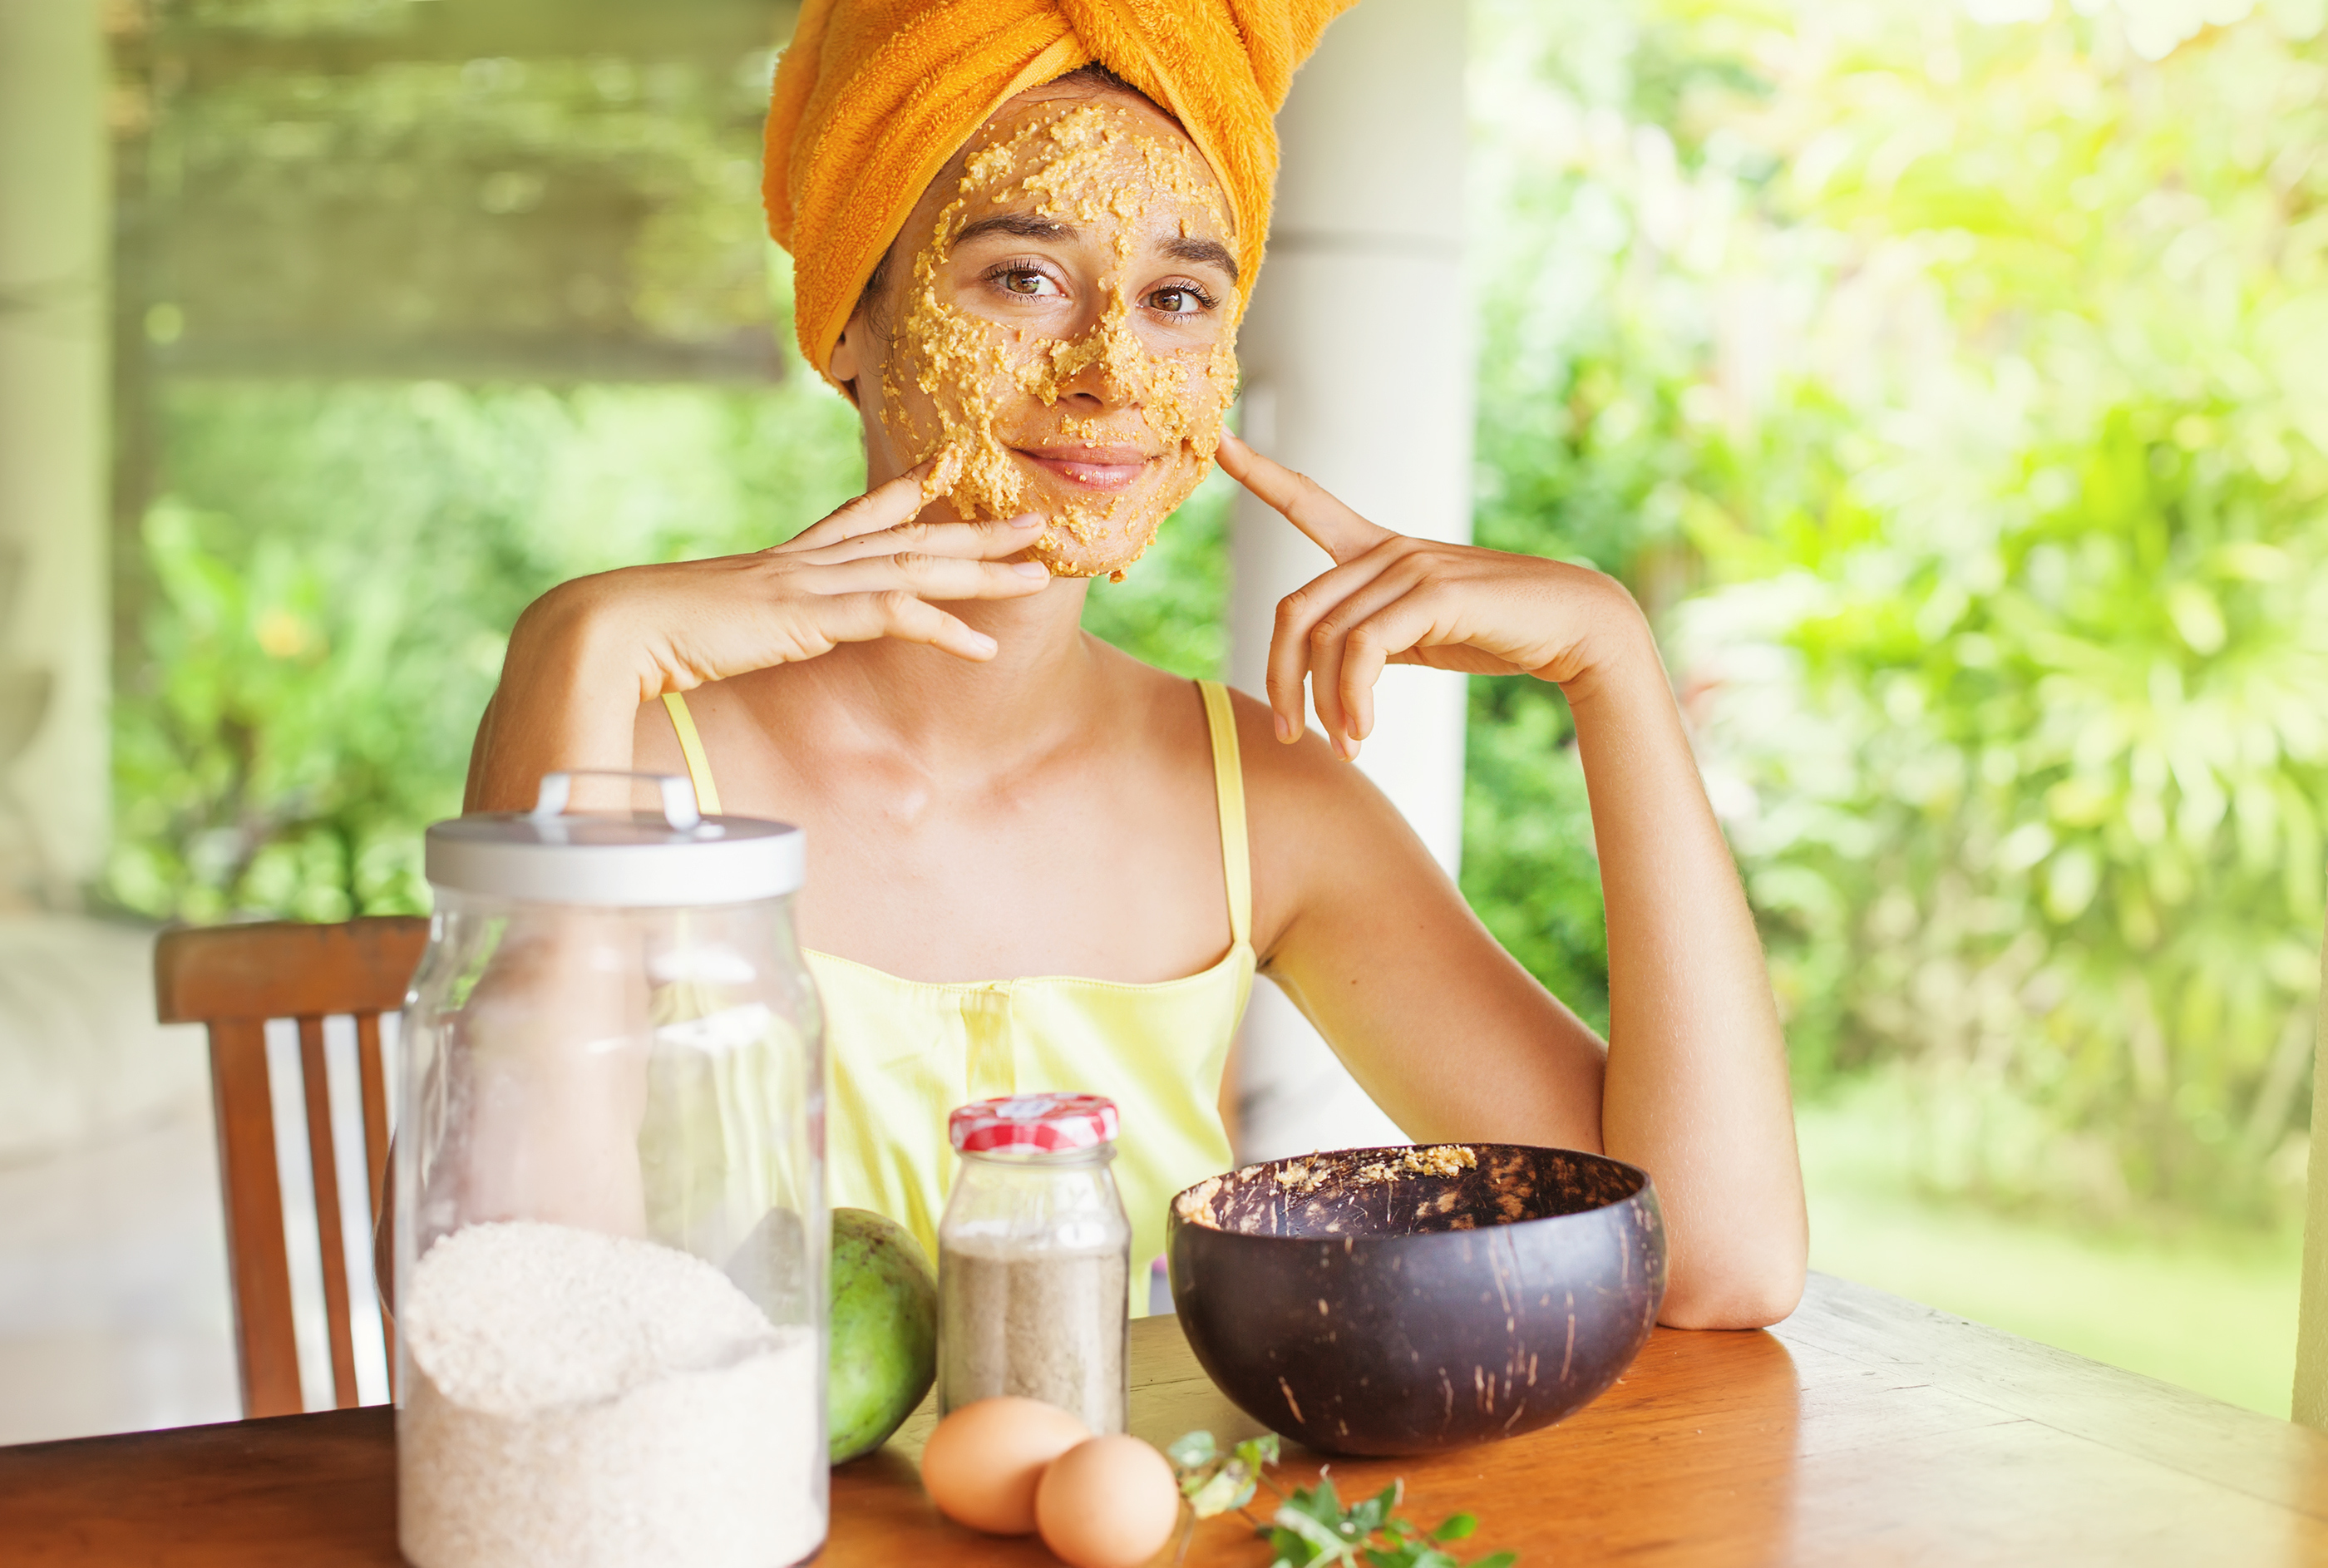 7 New Anti-Aging Products That Are Made With Superfoods